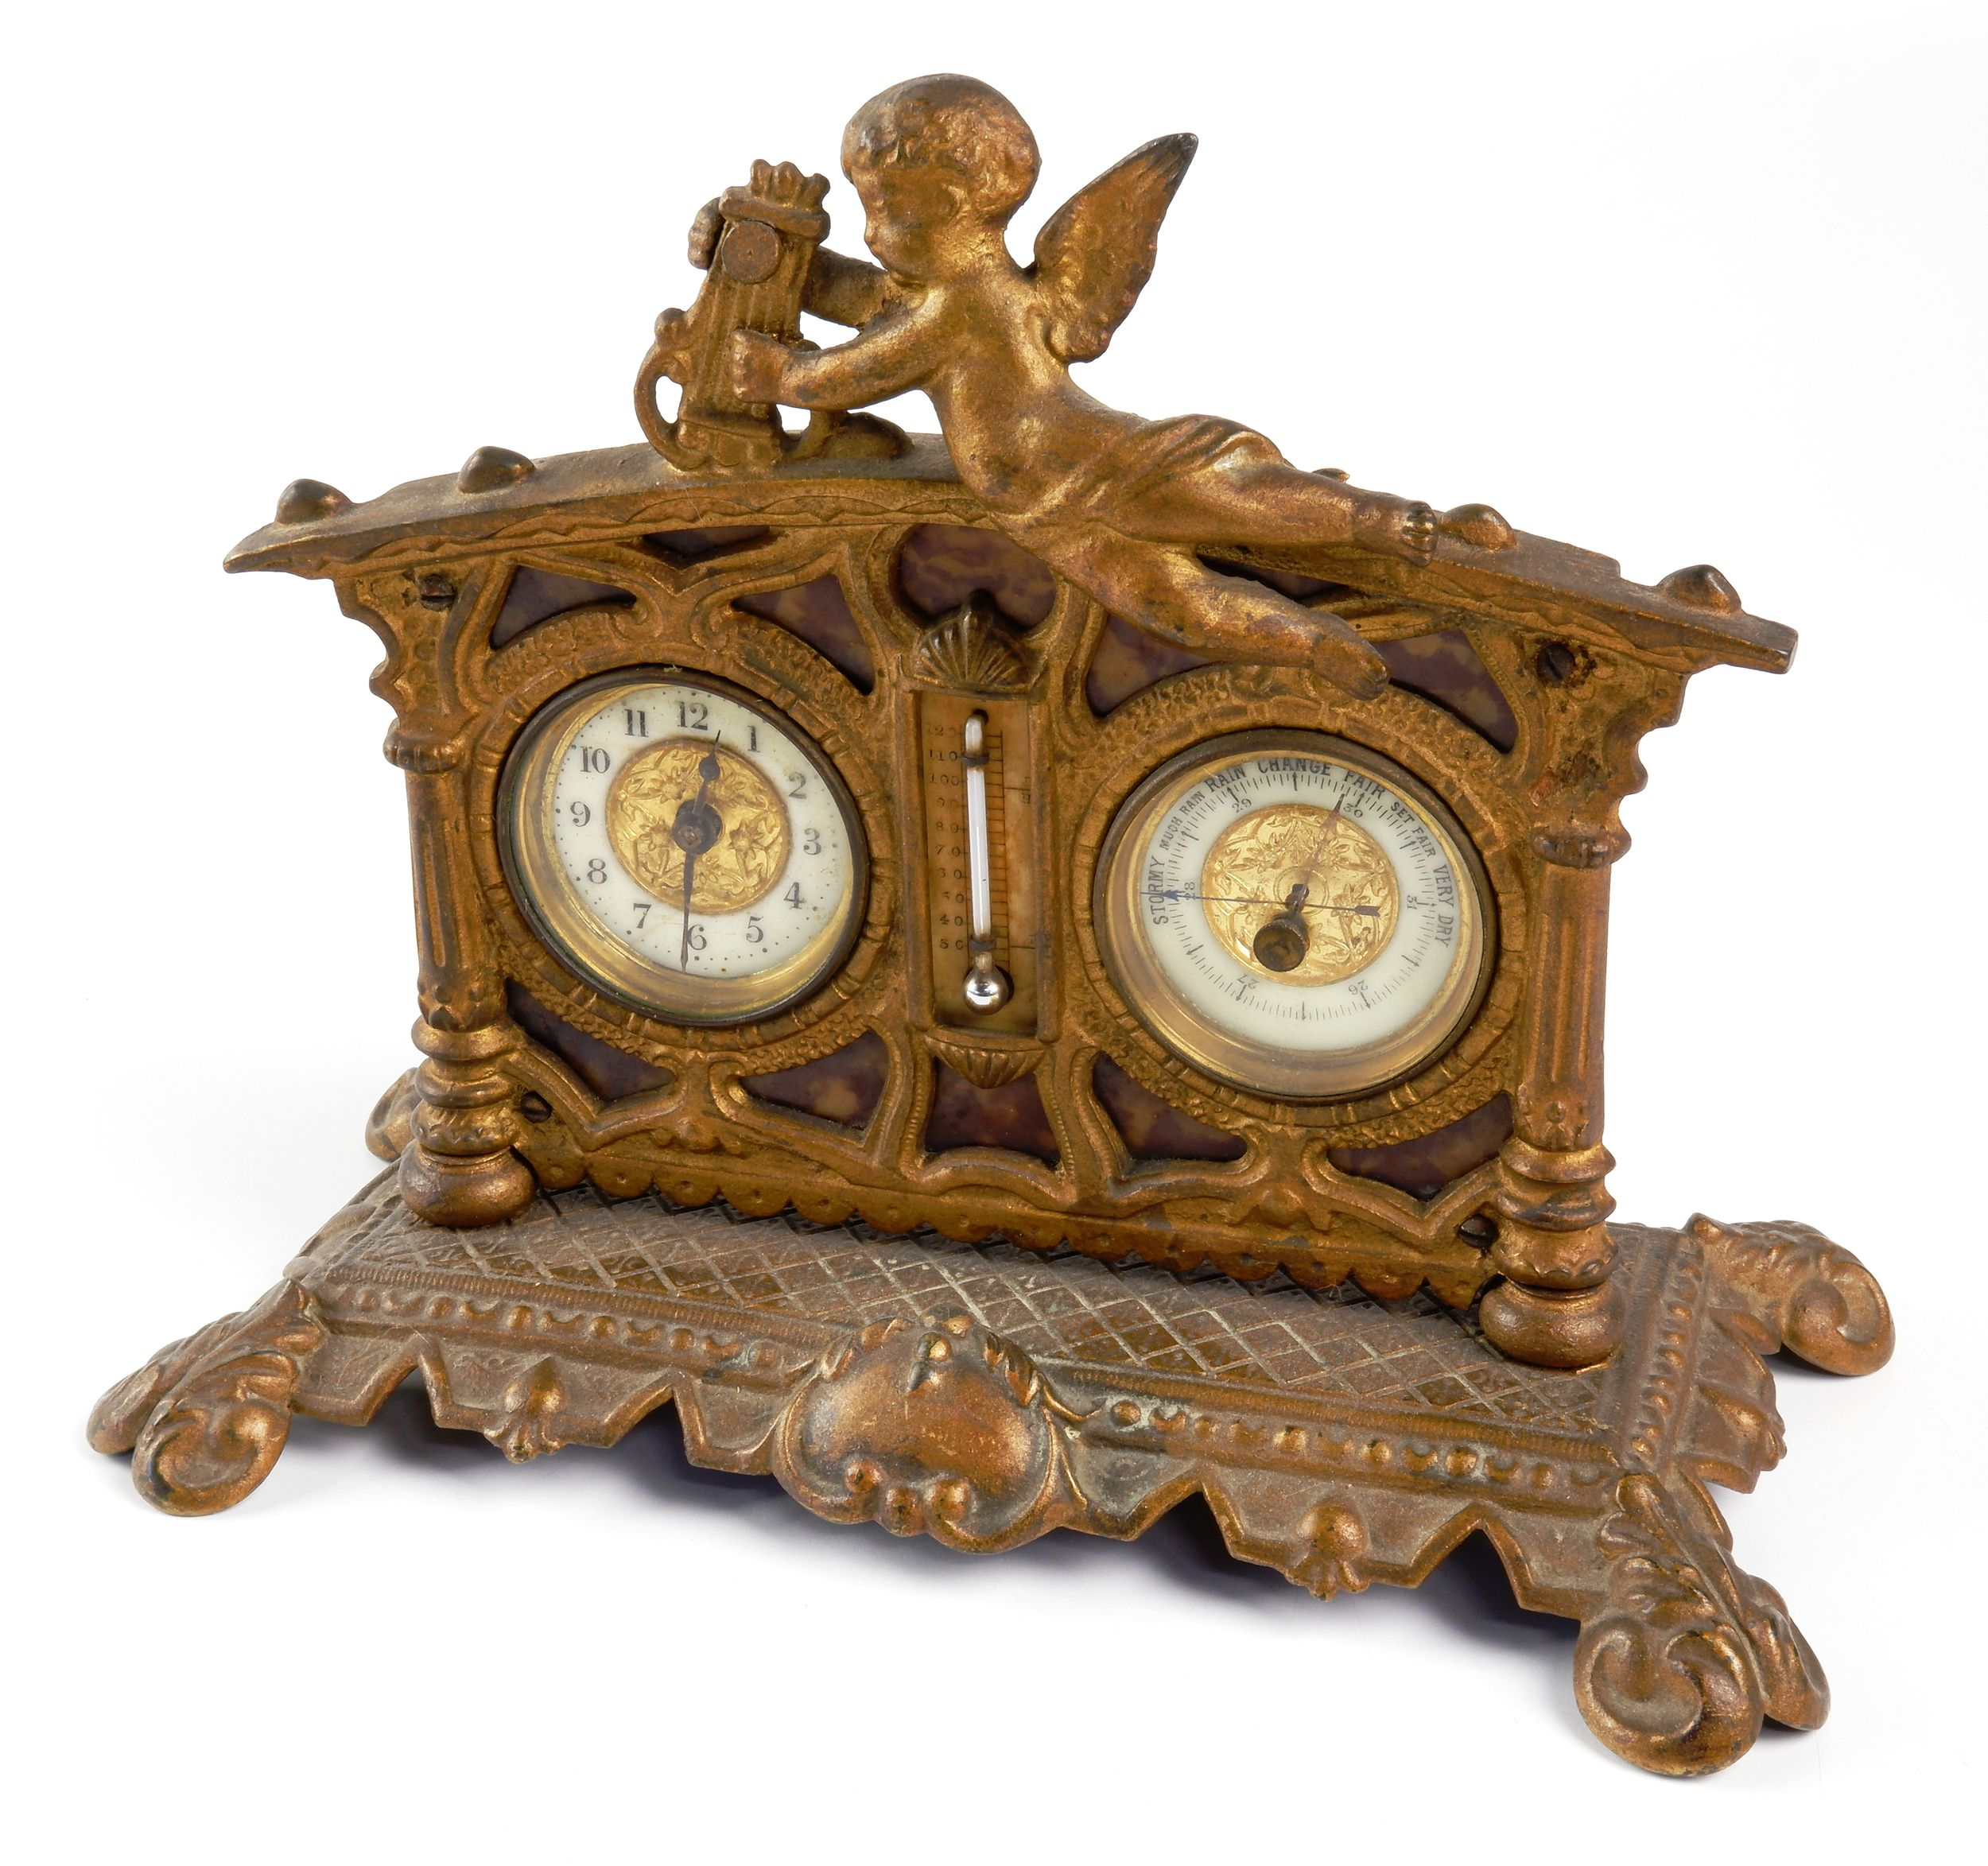 'Antique Art Nouveau Gilt Metal Desk Clock with Barometer and Humidity Gauge with Cherub and Lyre Finial'